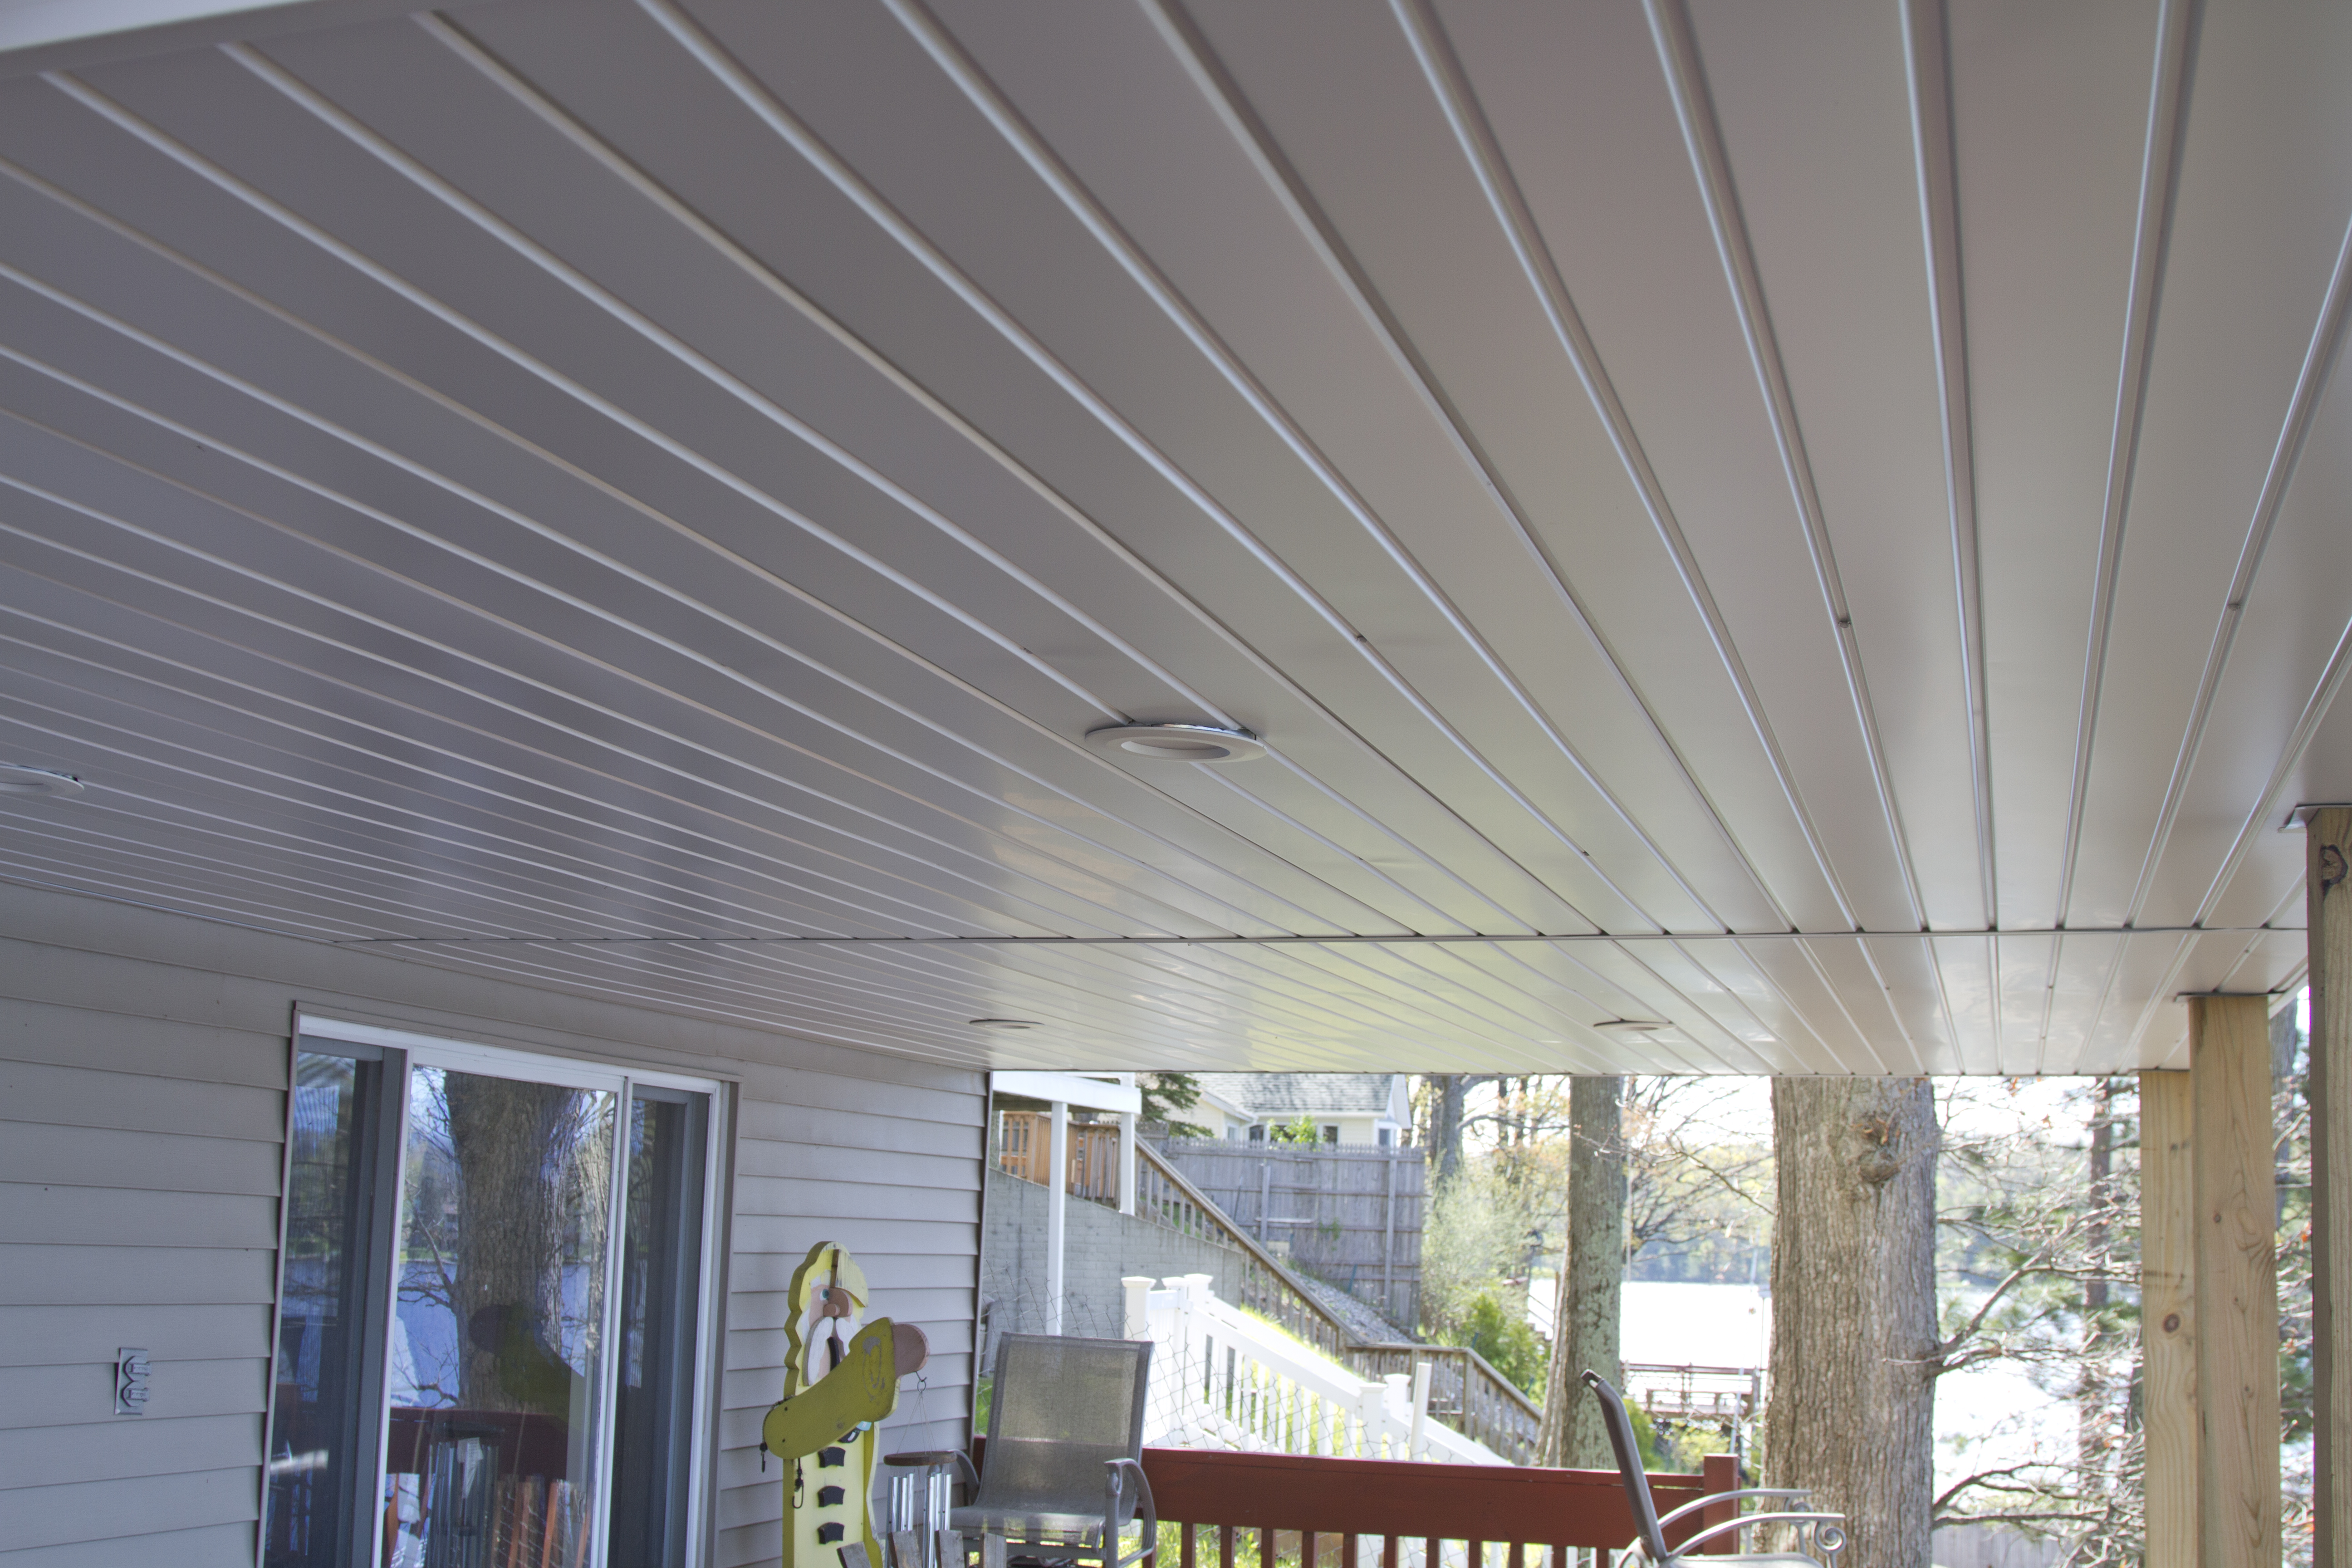 Interior of Reverse Gable Style 4 Season Sunroom in Northern Michigan